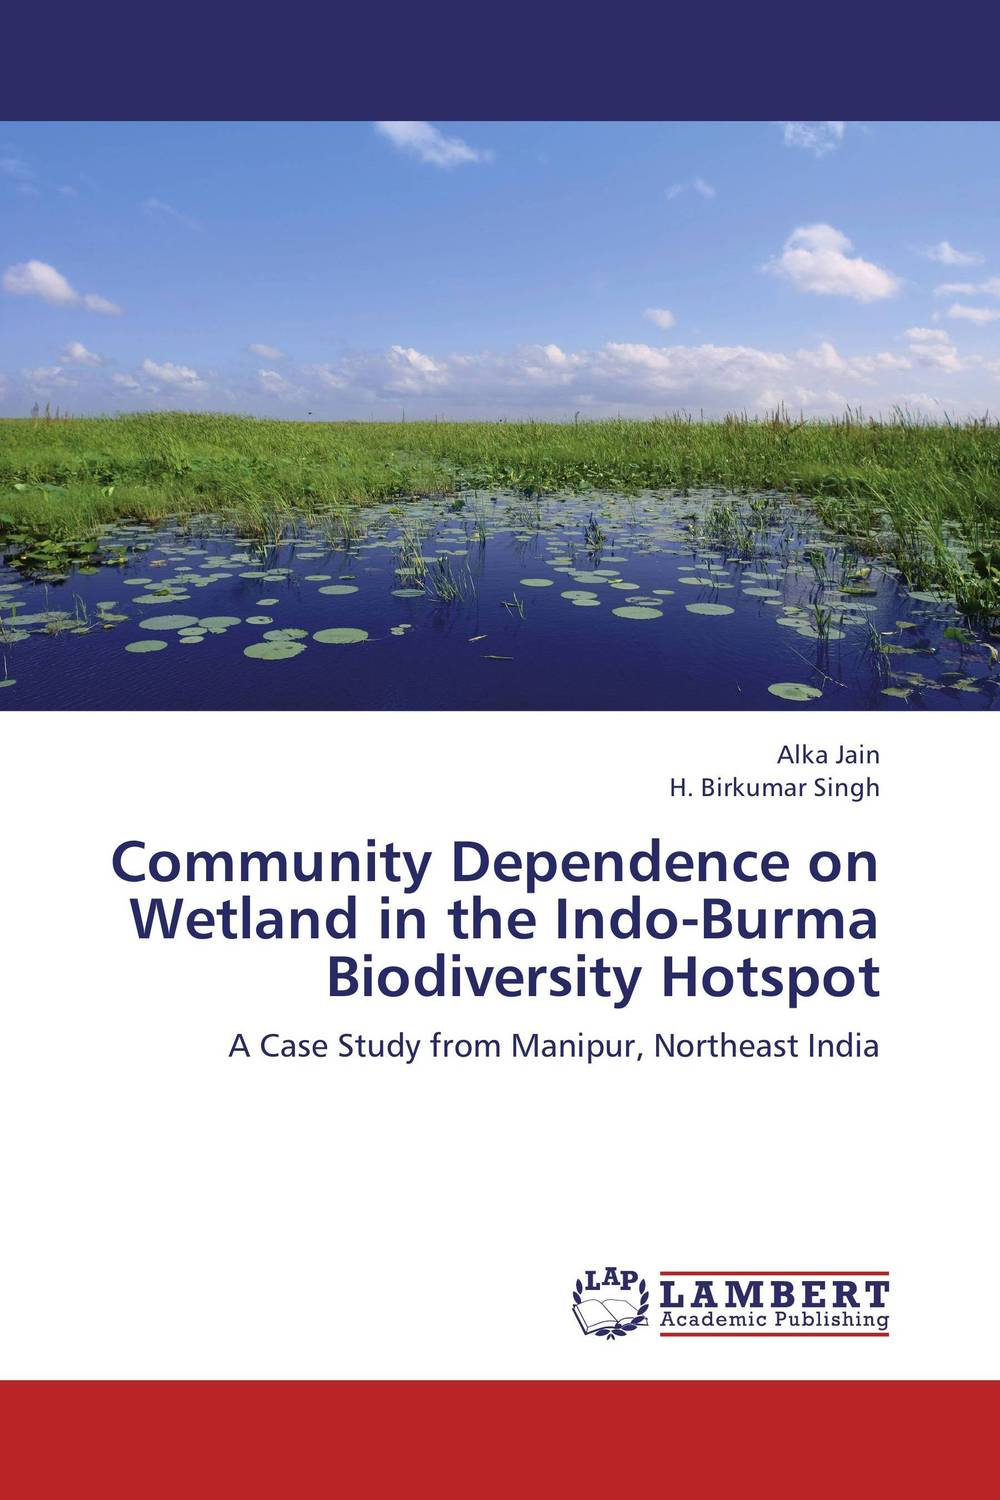 Community Dependence on Wetland in the Indo-Burma Biodiversity Hotspot personality profile and induced psychosis in alcohol dependence